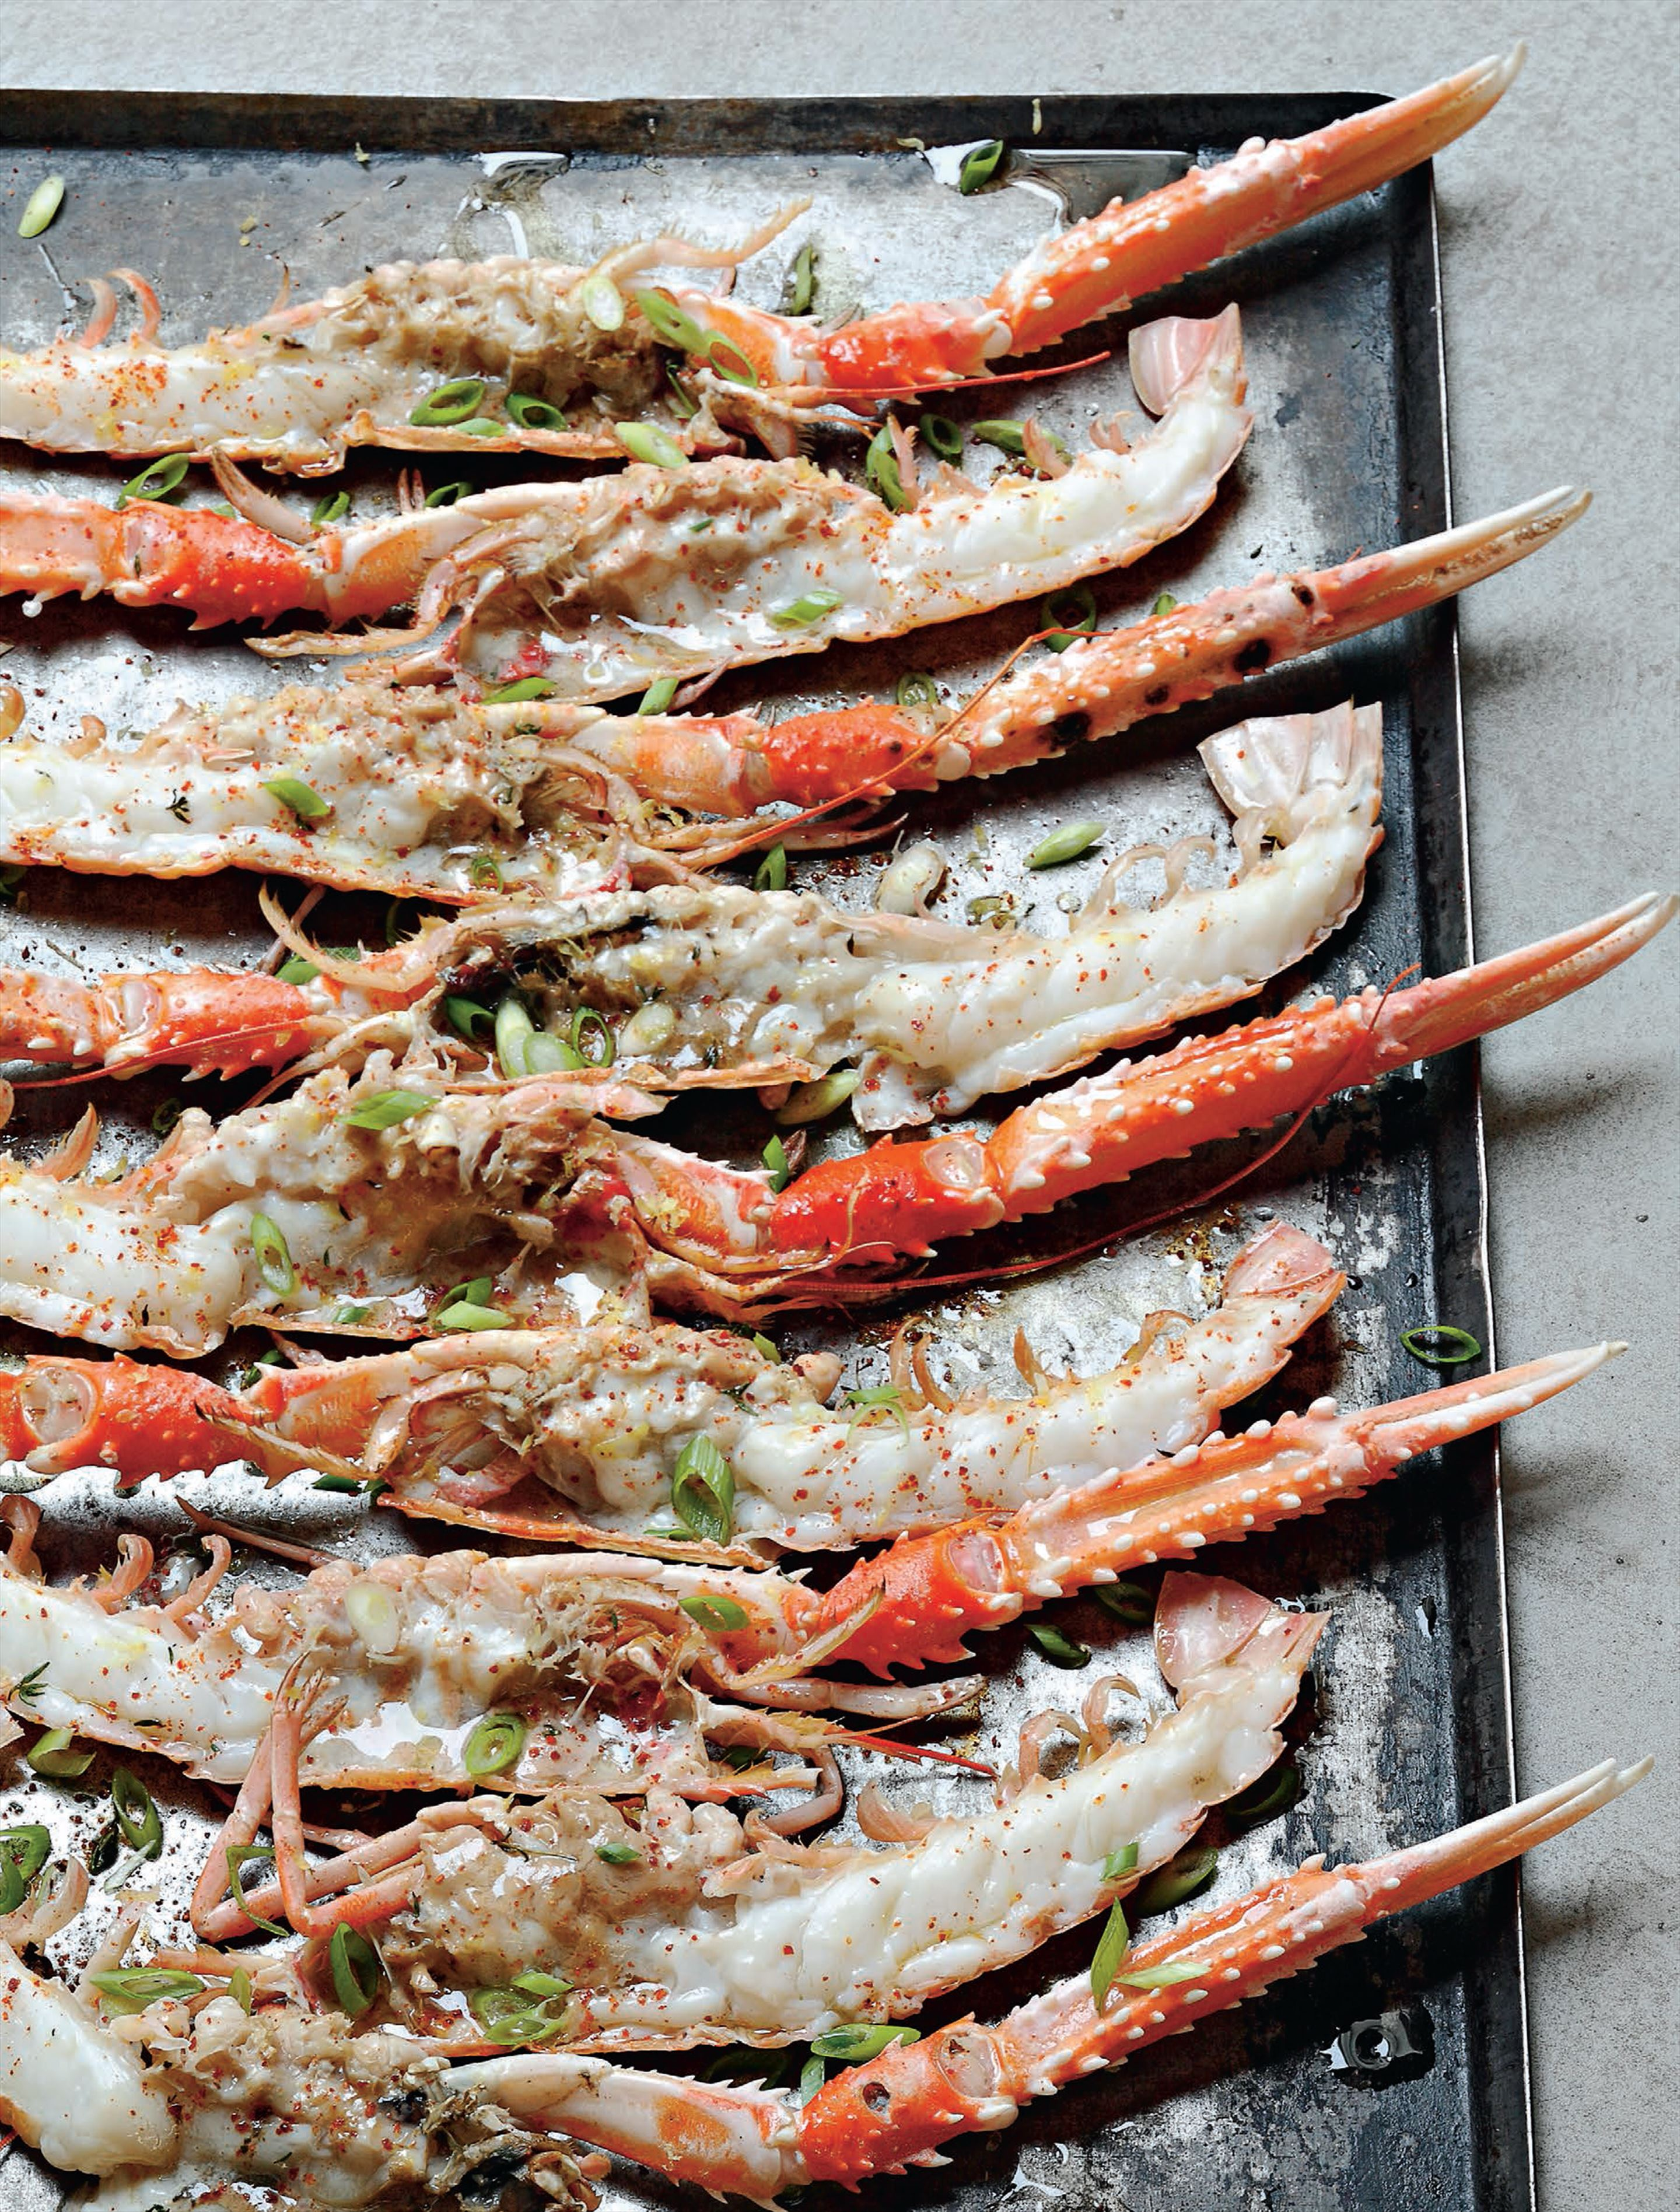 Grilled langoustines with lemon